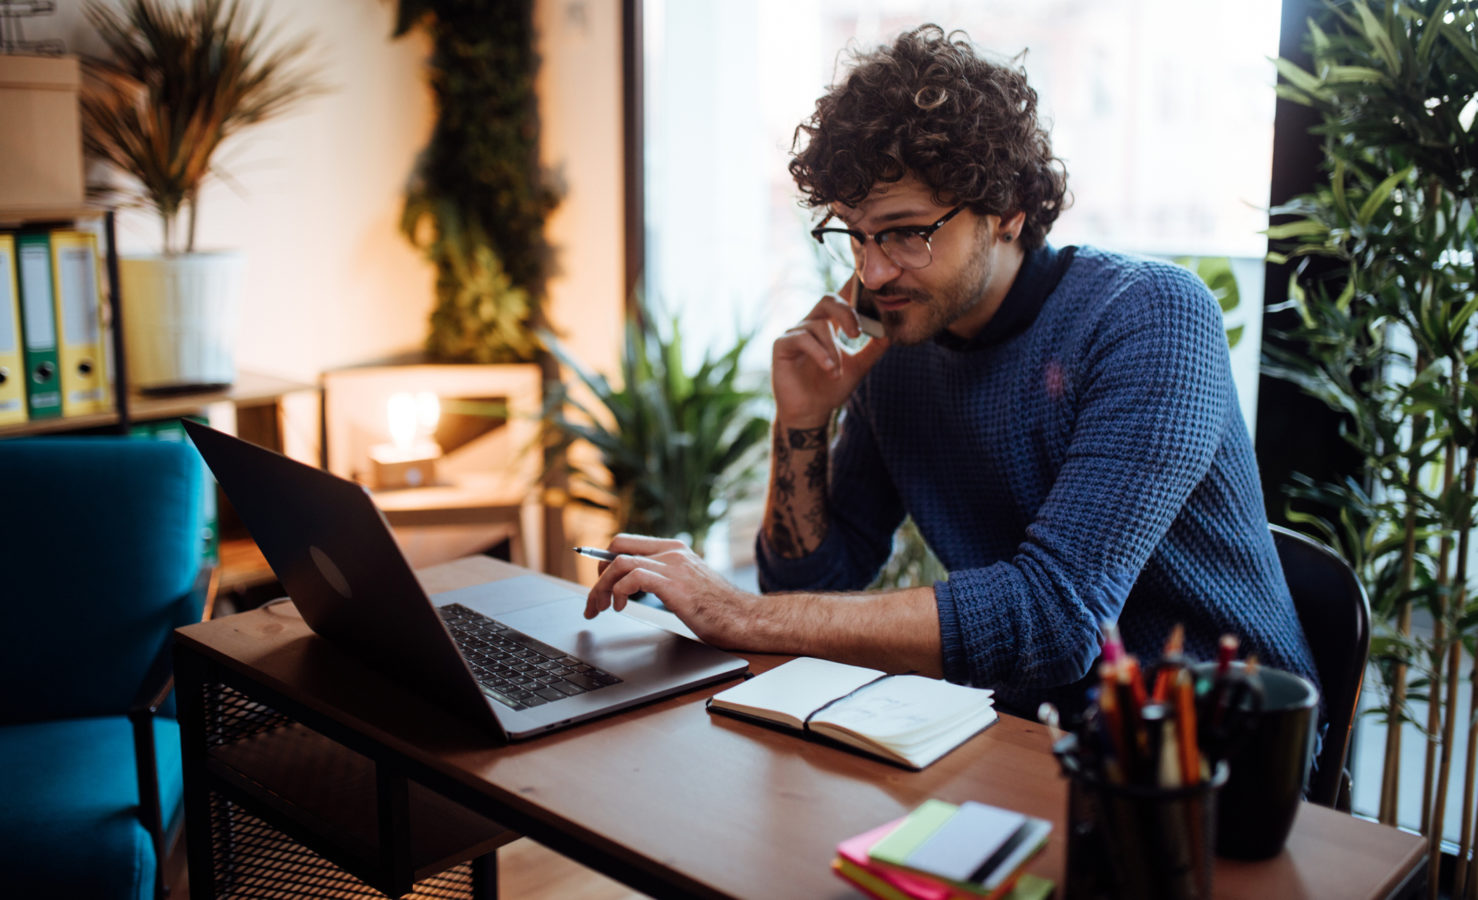 Beyond Skype: 6 conference call apps for seamless business meetings at home